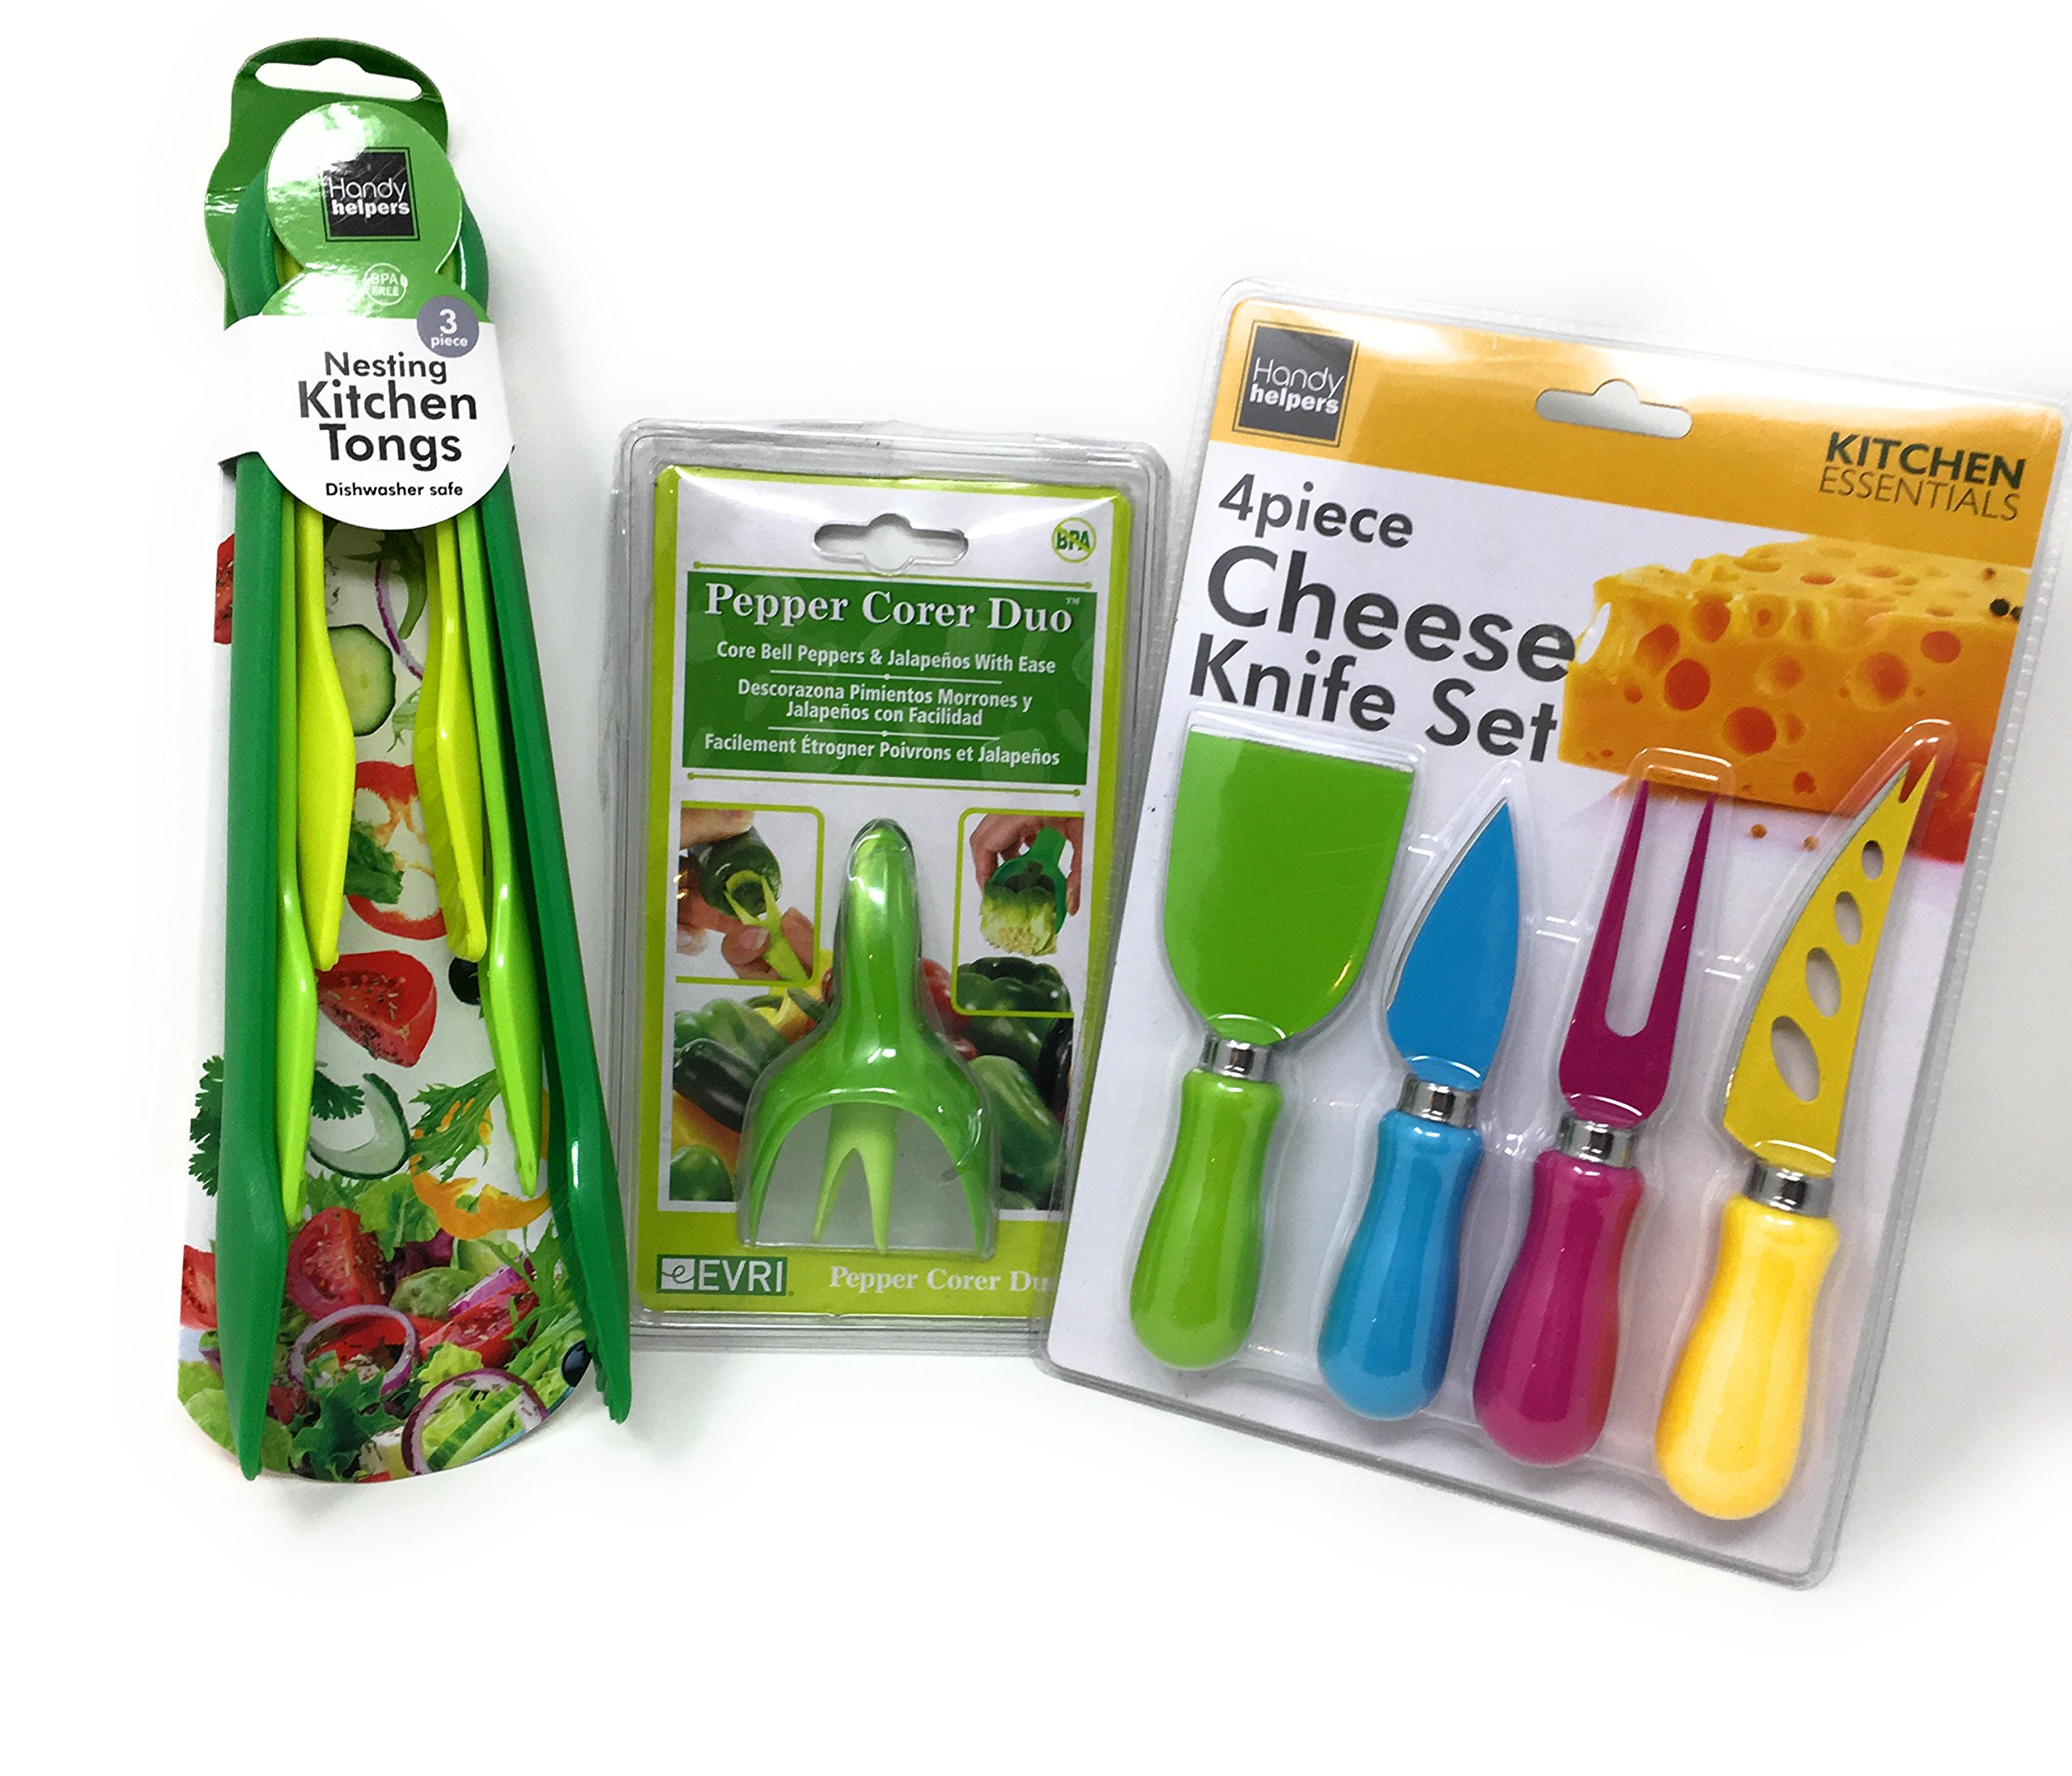 Kitchen Essentials Bundle: Practical, Fun, Adorable Cheese Knife Set (4pcs), Nestling Kitchen Tongs (3 Sizes), & Bell Pepper & Jalapeno Corer Duo